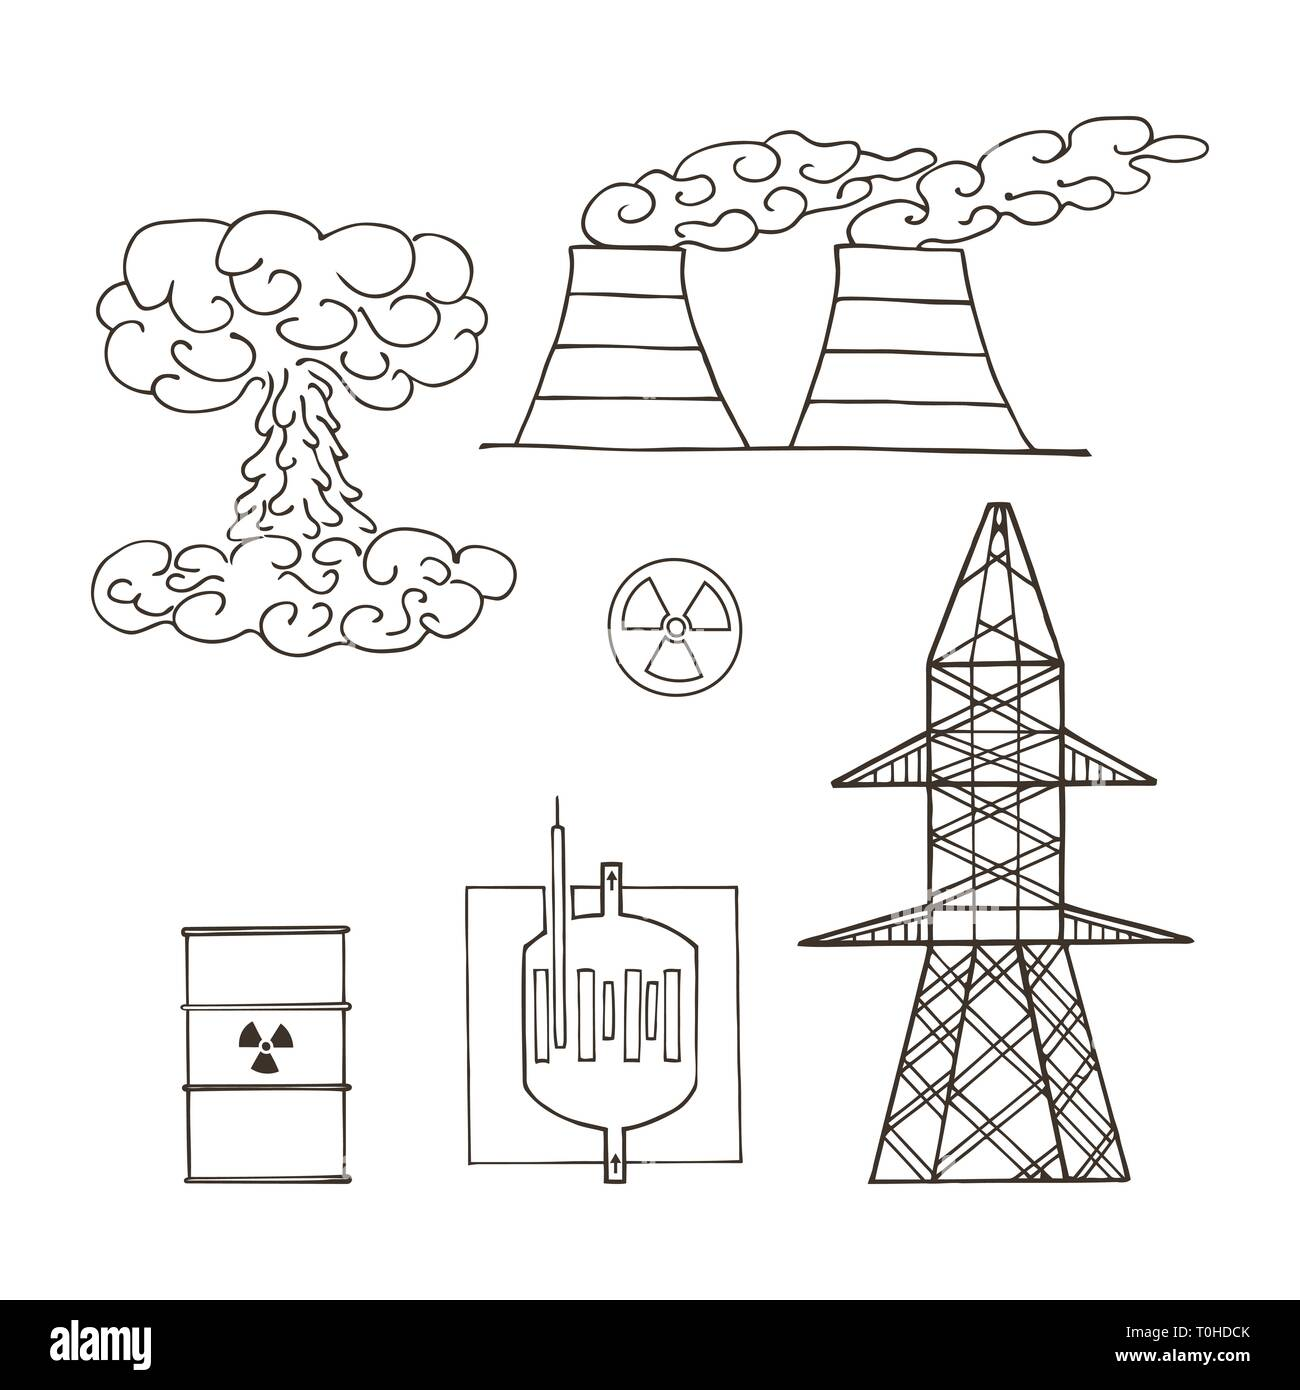 Nuclear power plant. Toxic waste. Environmental pollution. Vector illustration - Stock Vector